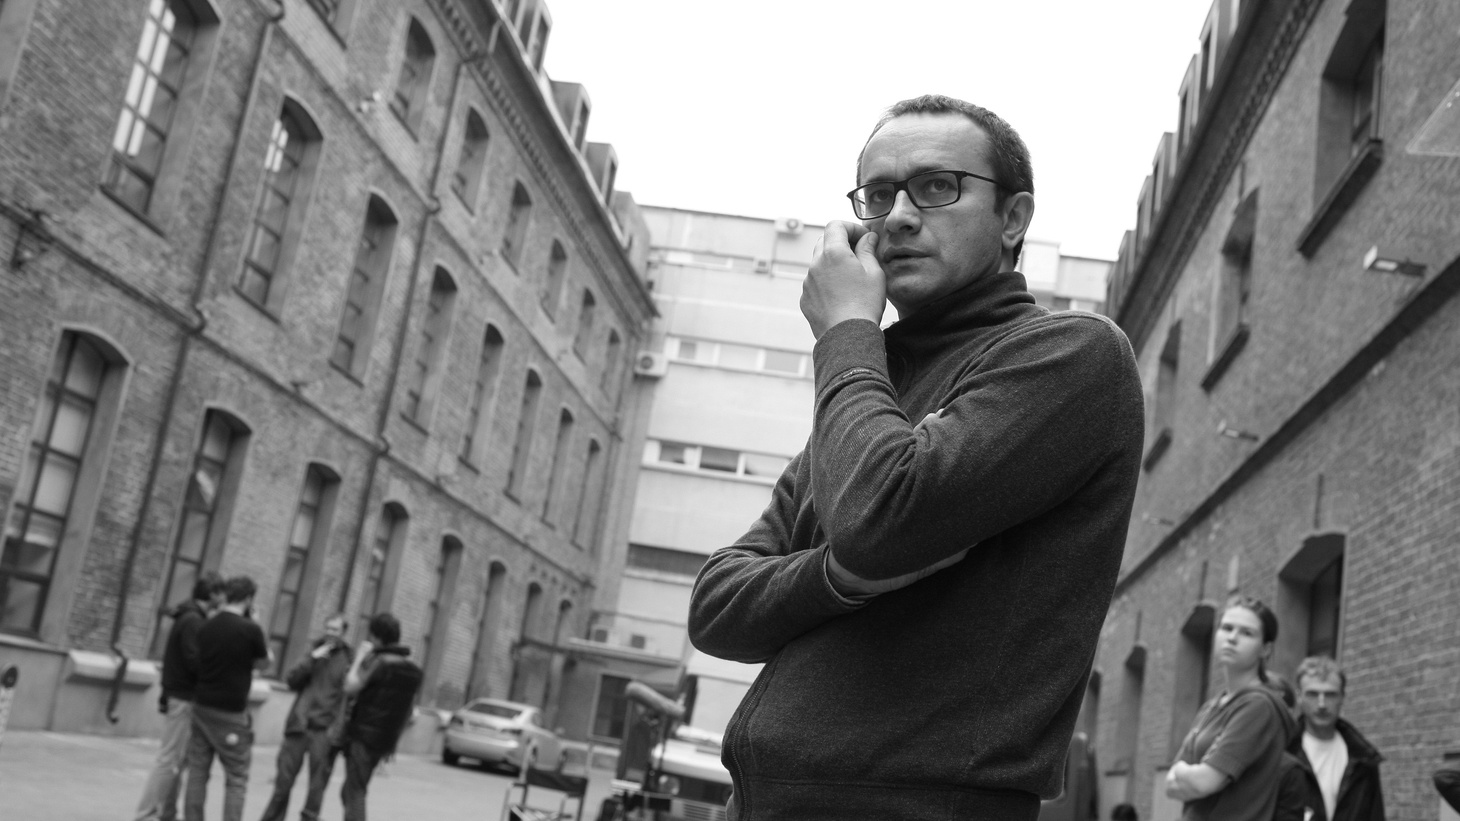 Director Andrey Zvyagintsev and producer Alexander Rodnyansky's film Leviathan is Oscar-nominated, but back home in Russia, the official reaction has been one of displeasure.